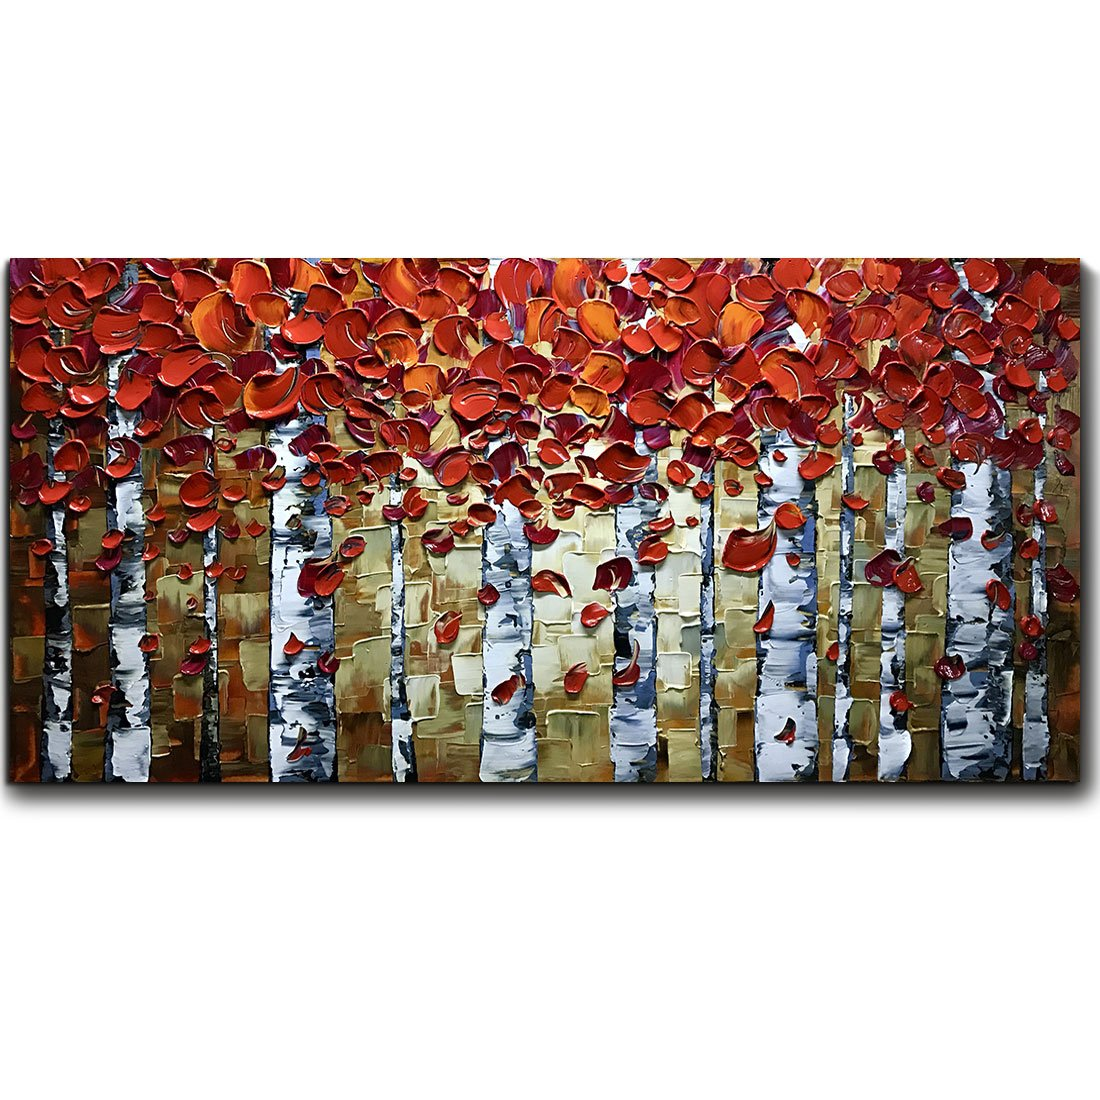 V-inspire Paintings, 20x40 Inch Modern Abstract Painting Red Birch Tree Oil Hand Painting 3D Hand-Painted On Canvas Abstract Artwork Art Wood Inside Framed Hanging Wall Decoration